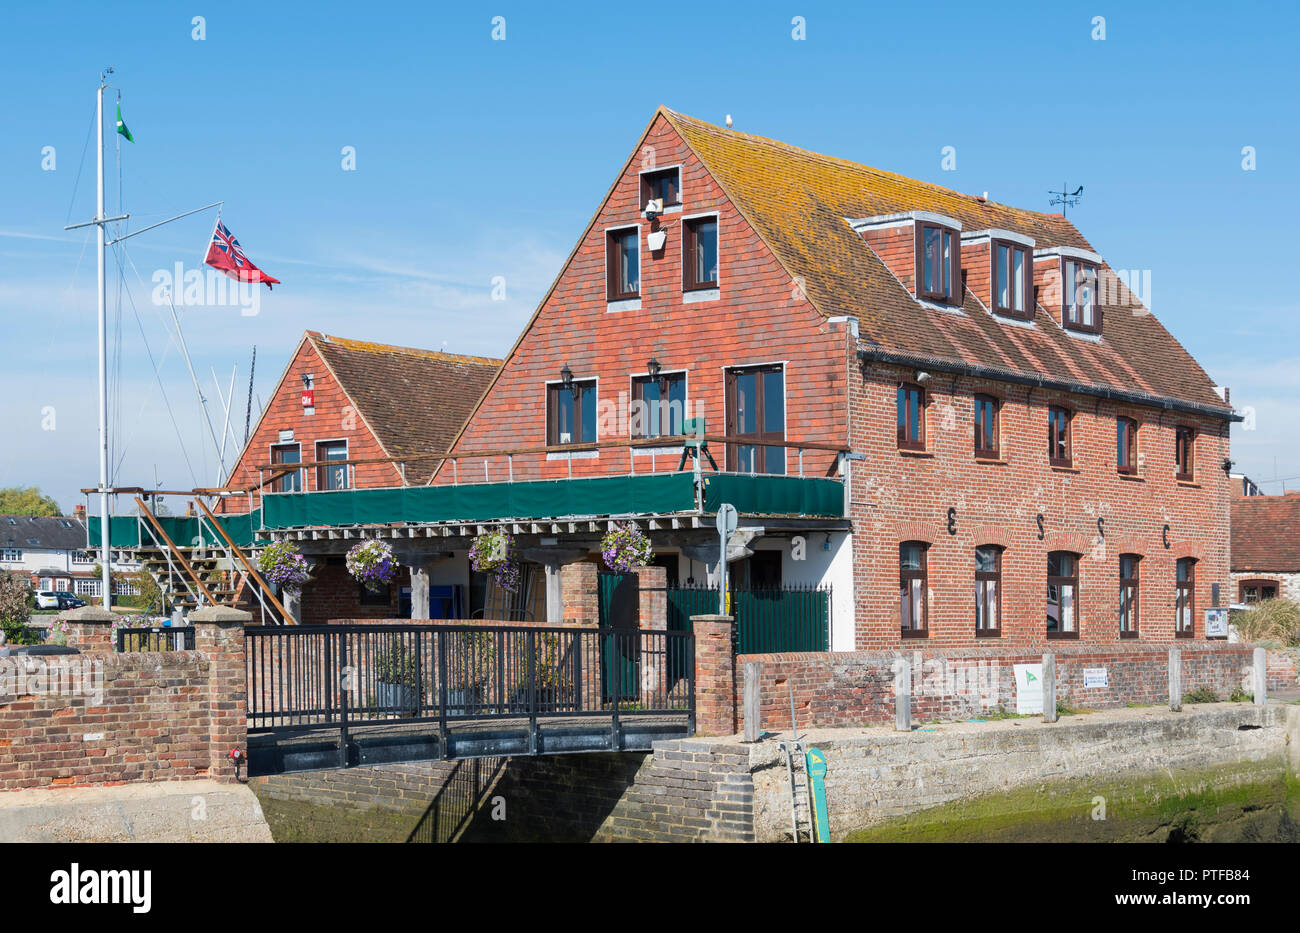 Emsworth Slipper Sailing Club (ESSC) at the Old Quay Tide Mill building in Emsworth, Hampshire, England, UK. - Stock Image